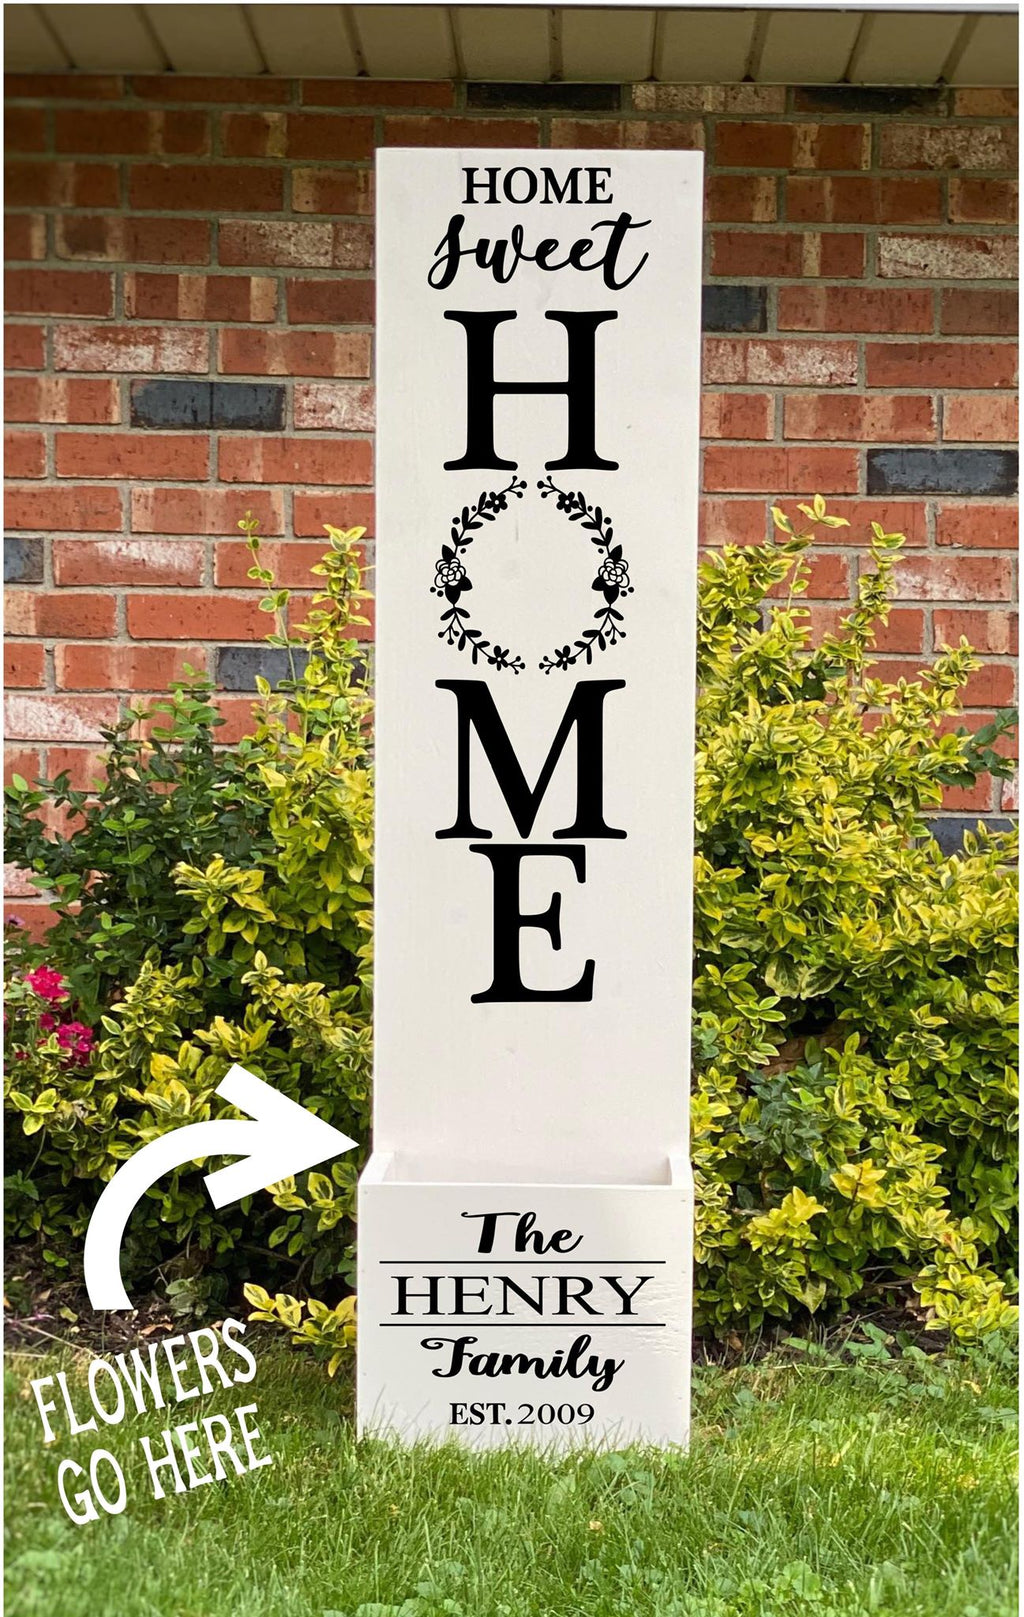 Porch Planter - Home sweet home with Wreath and Family name